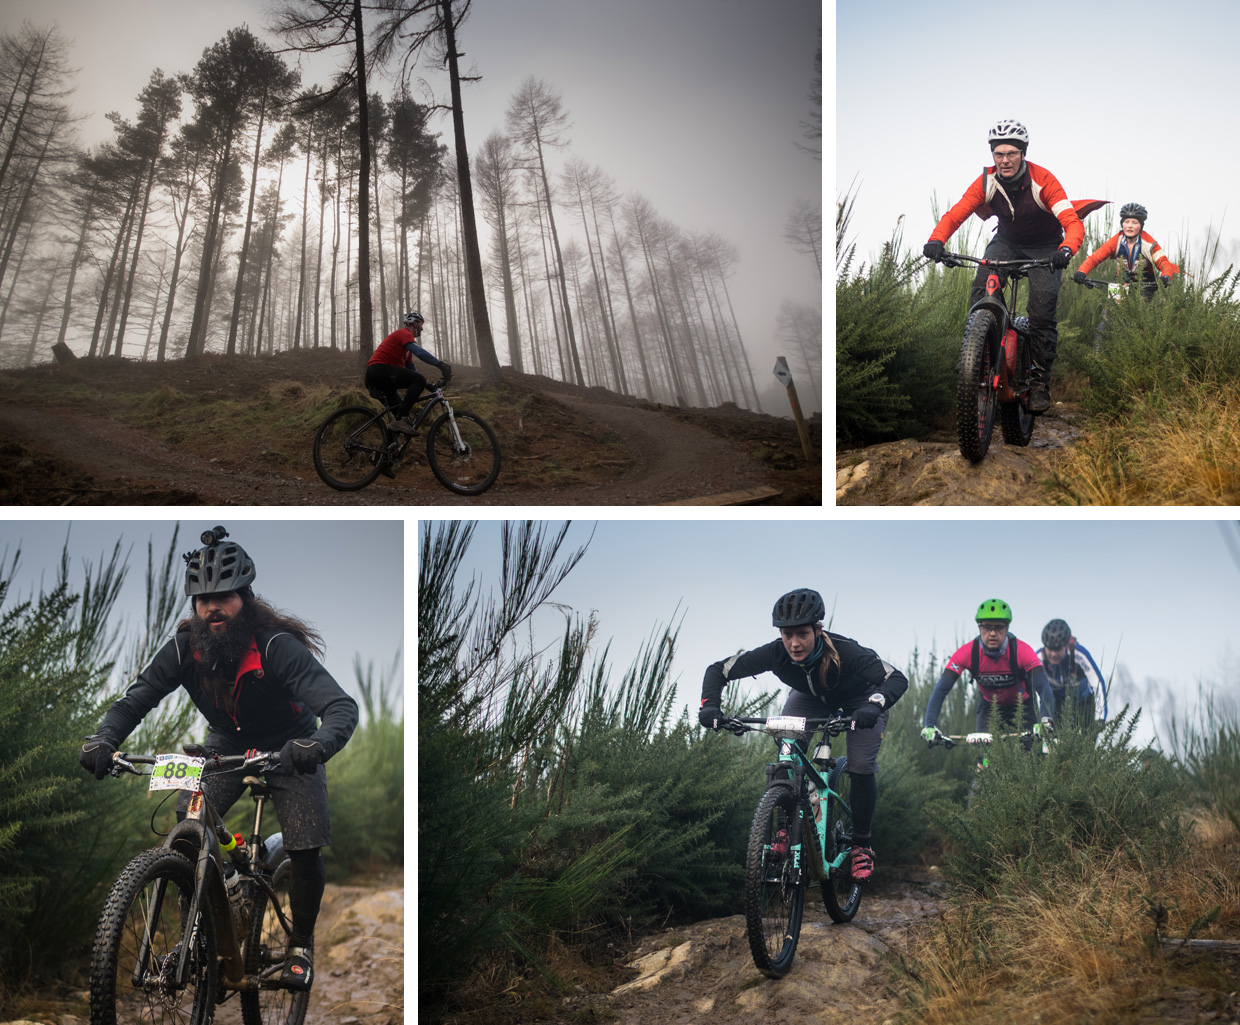 Strathpuffer: The Winter Wonder of the Highlands